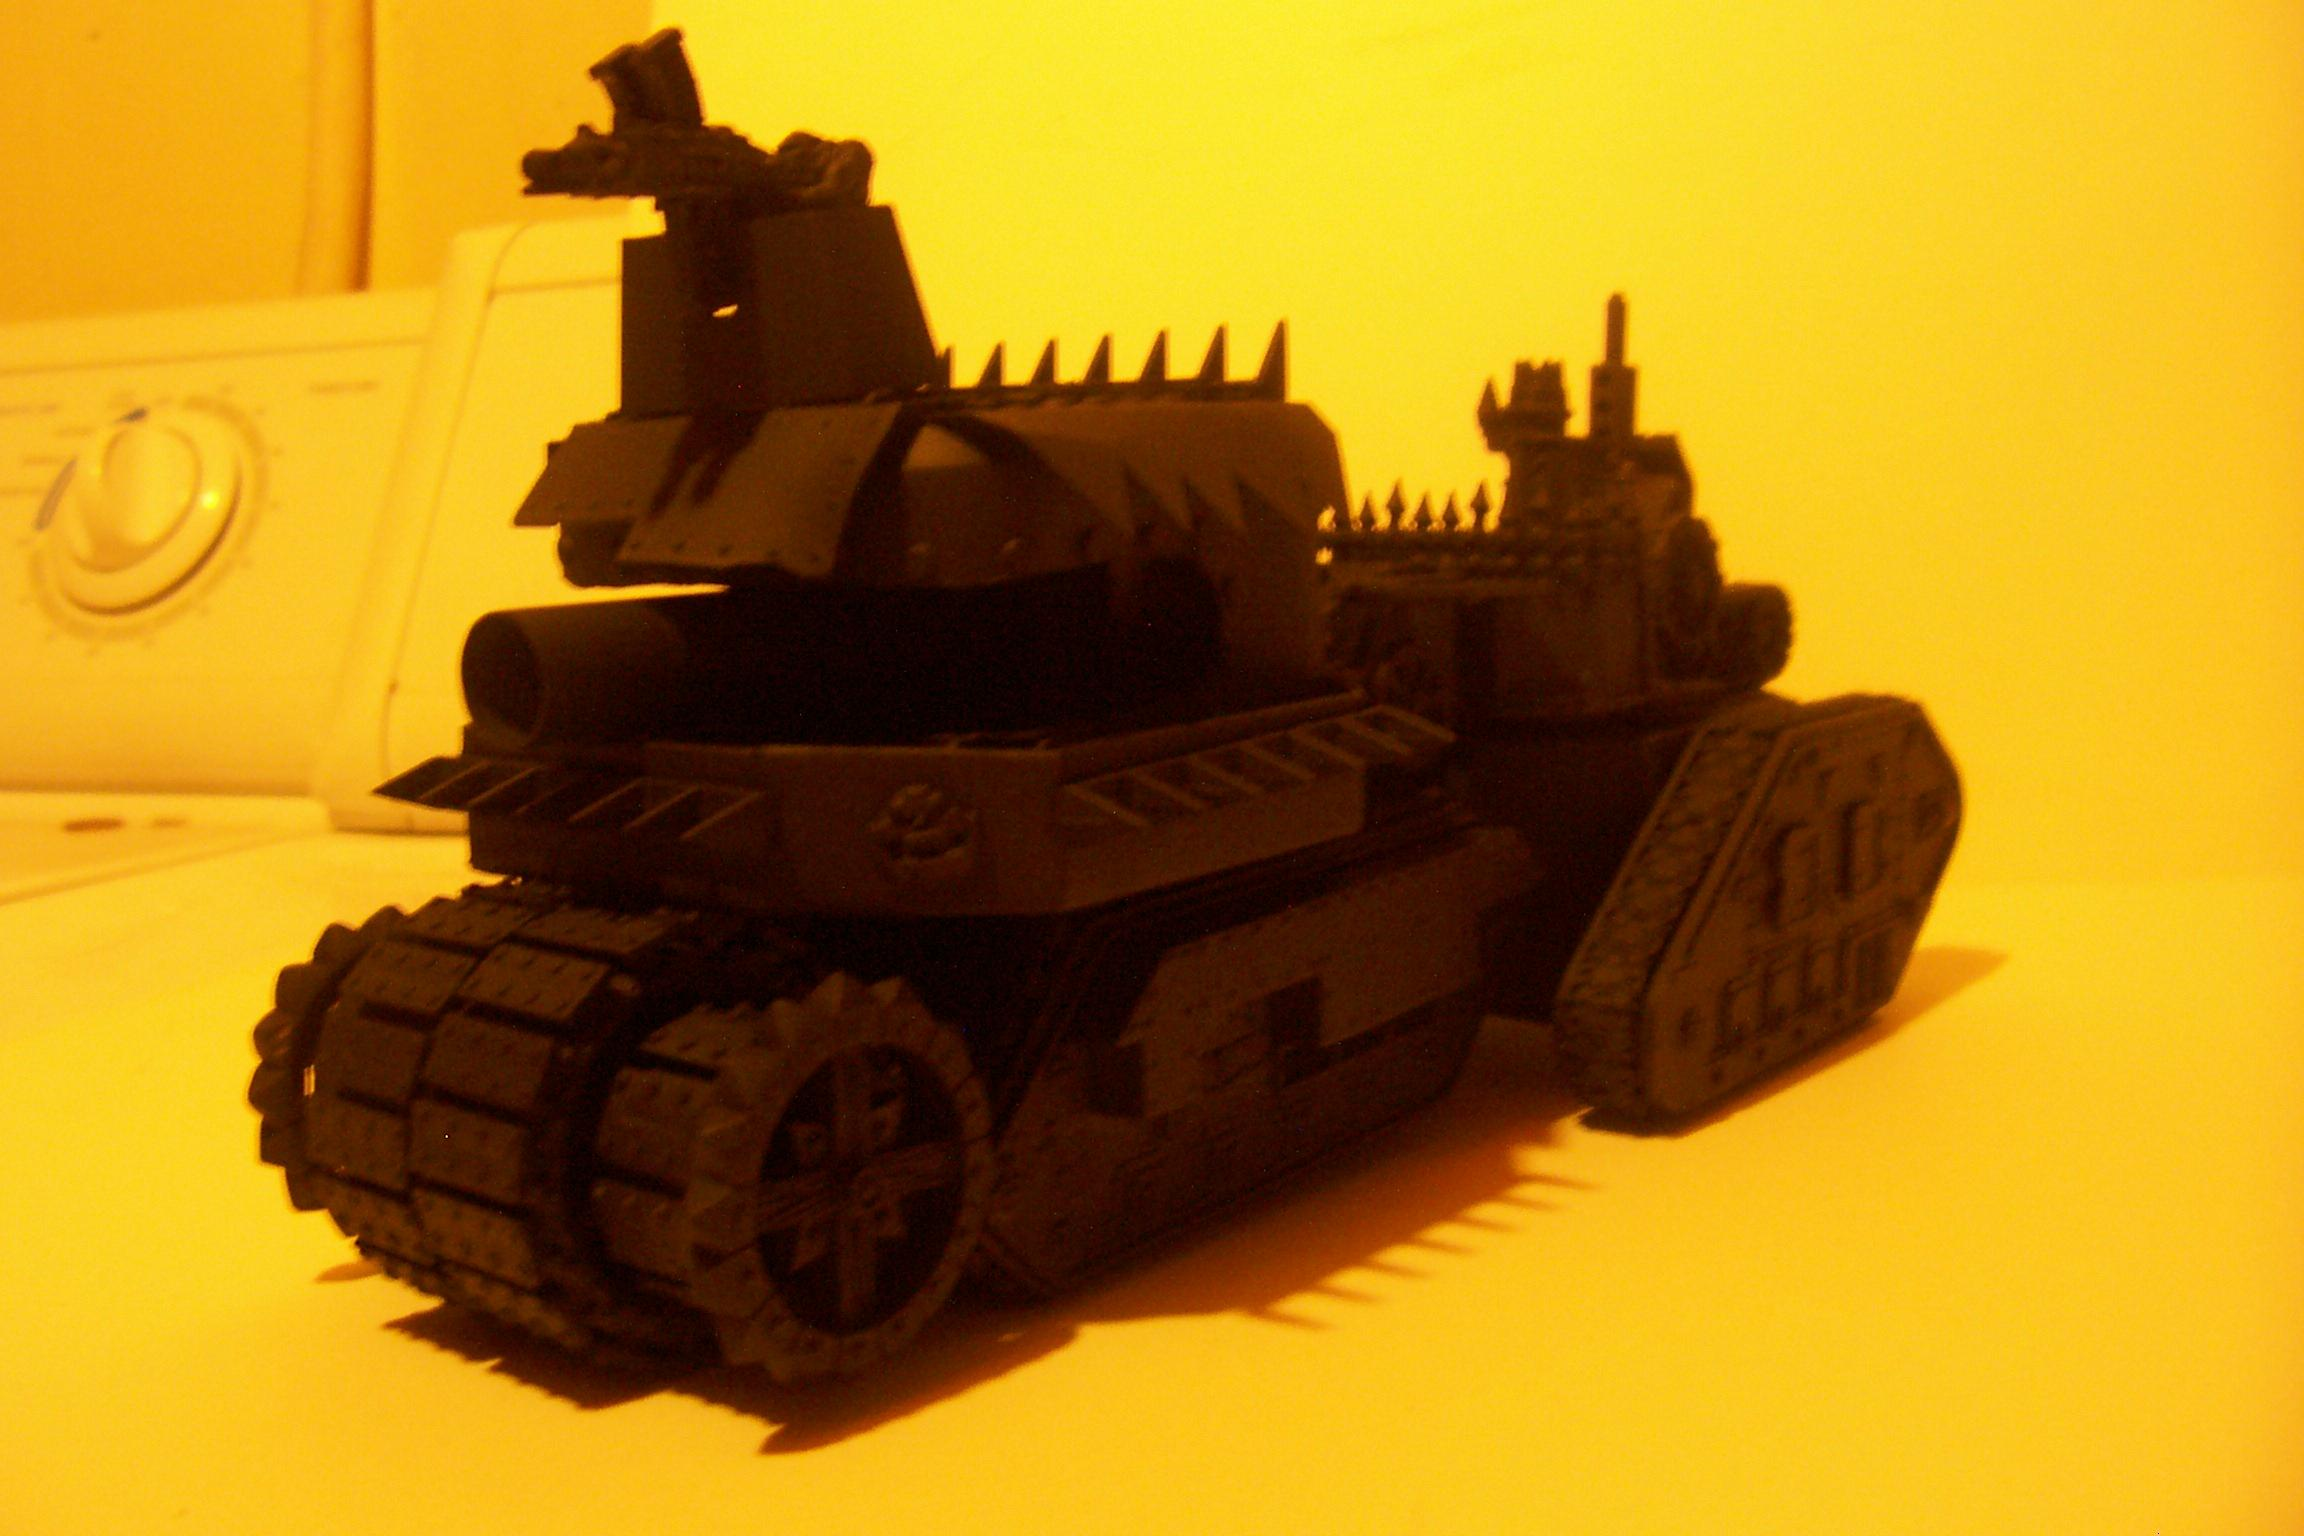 Battlewagon, Conversion, Leman Russ, Looted, Orks, Primered, Tank, Vehicle, Warhammer 40,000